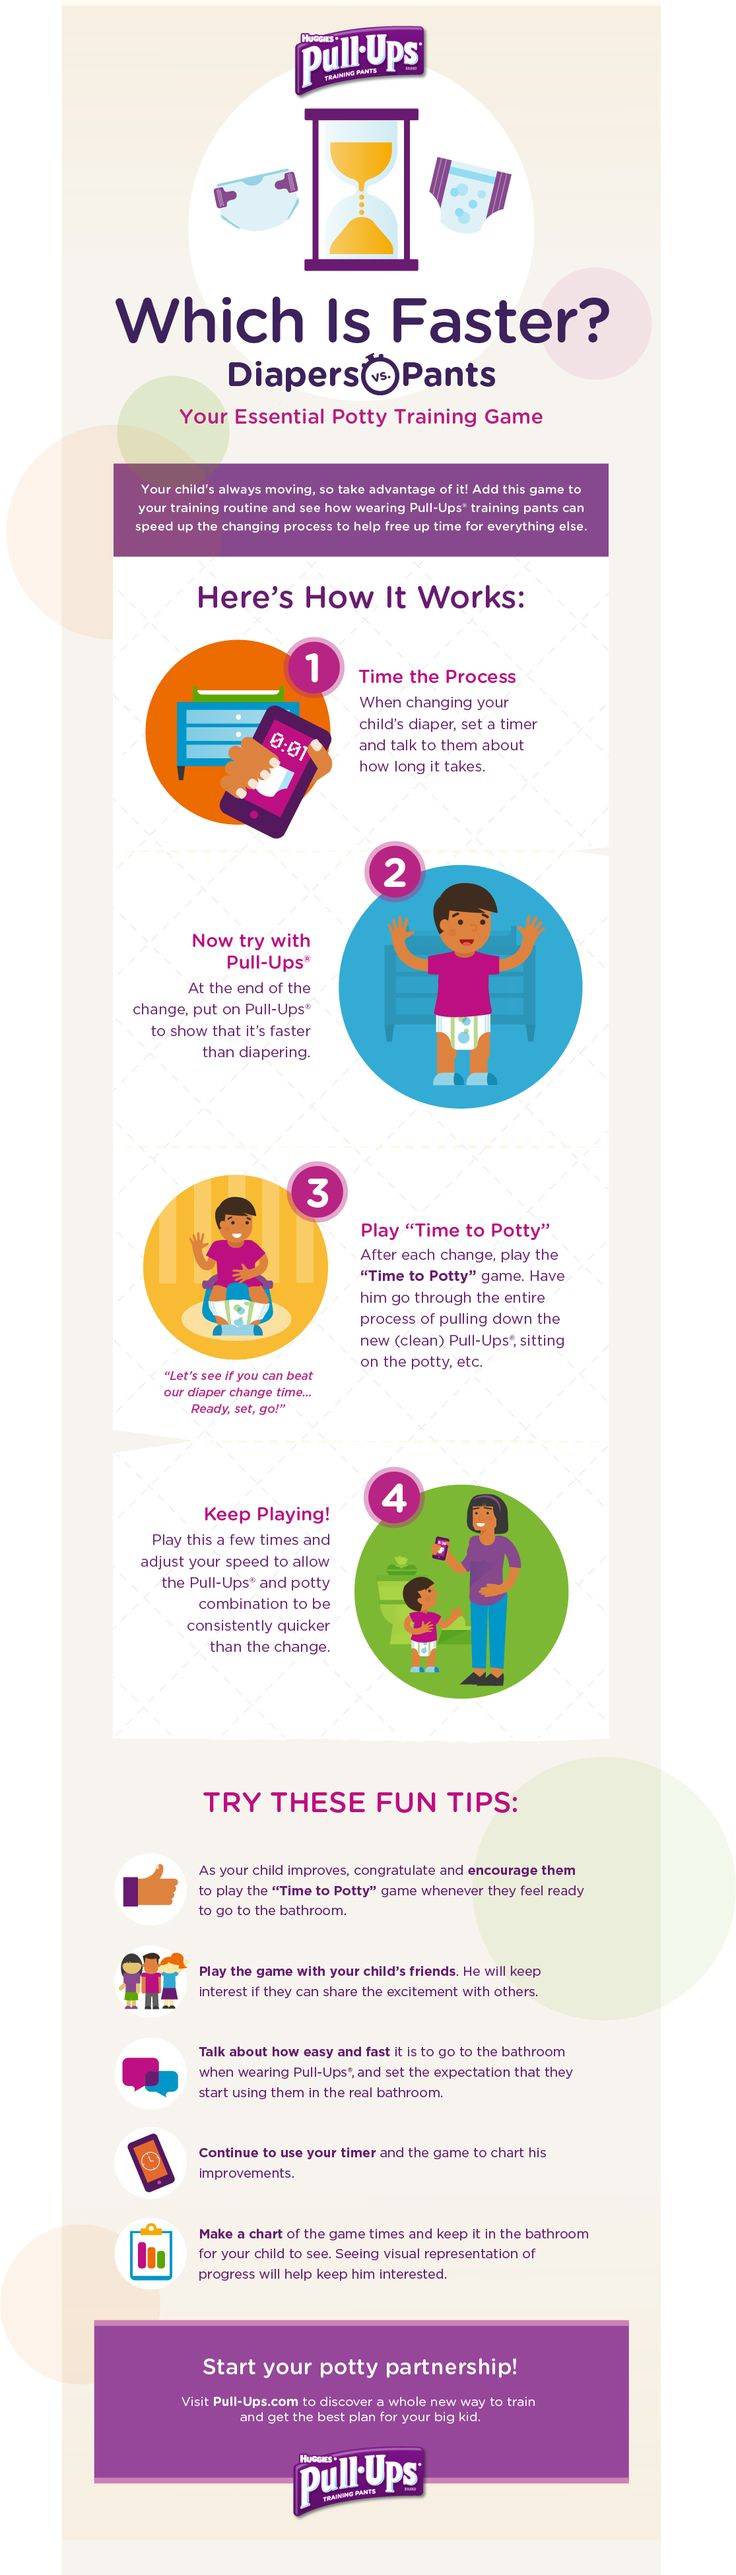 17 best images about potty training printables make potty training easy and fun pull ups® training pants tips disney designs and more from our potty training experts